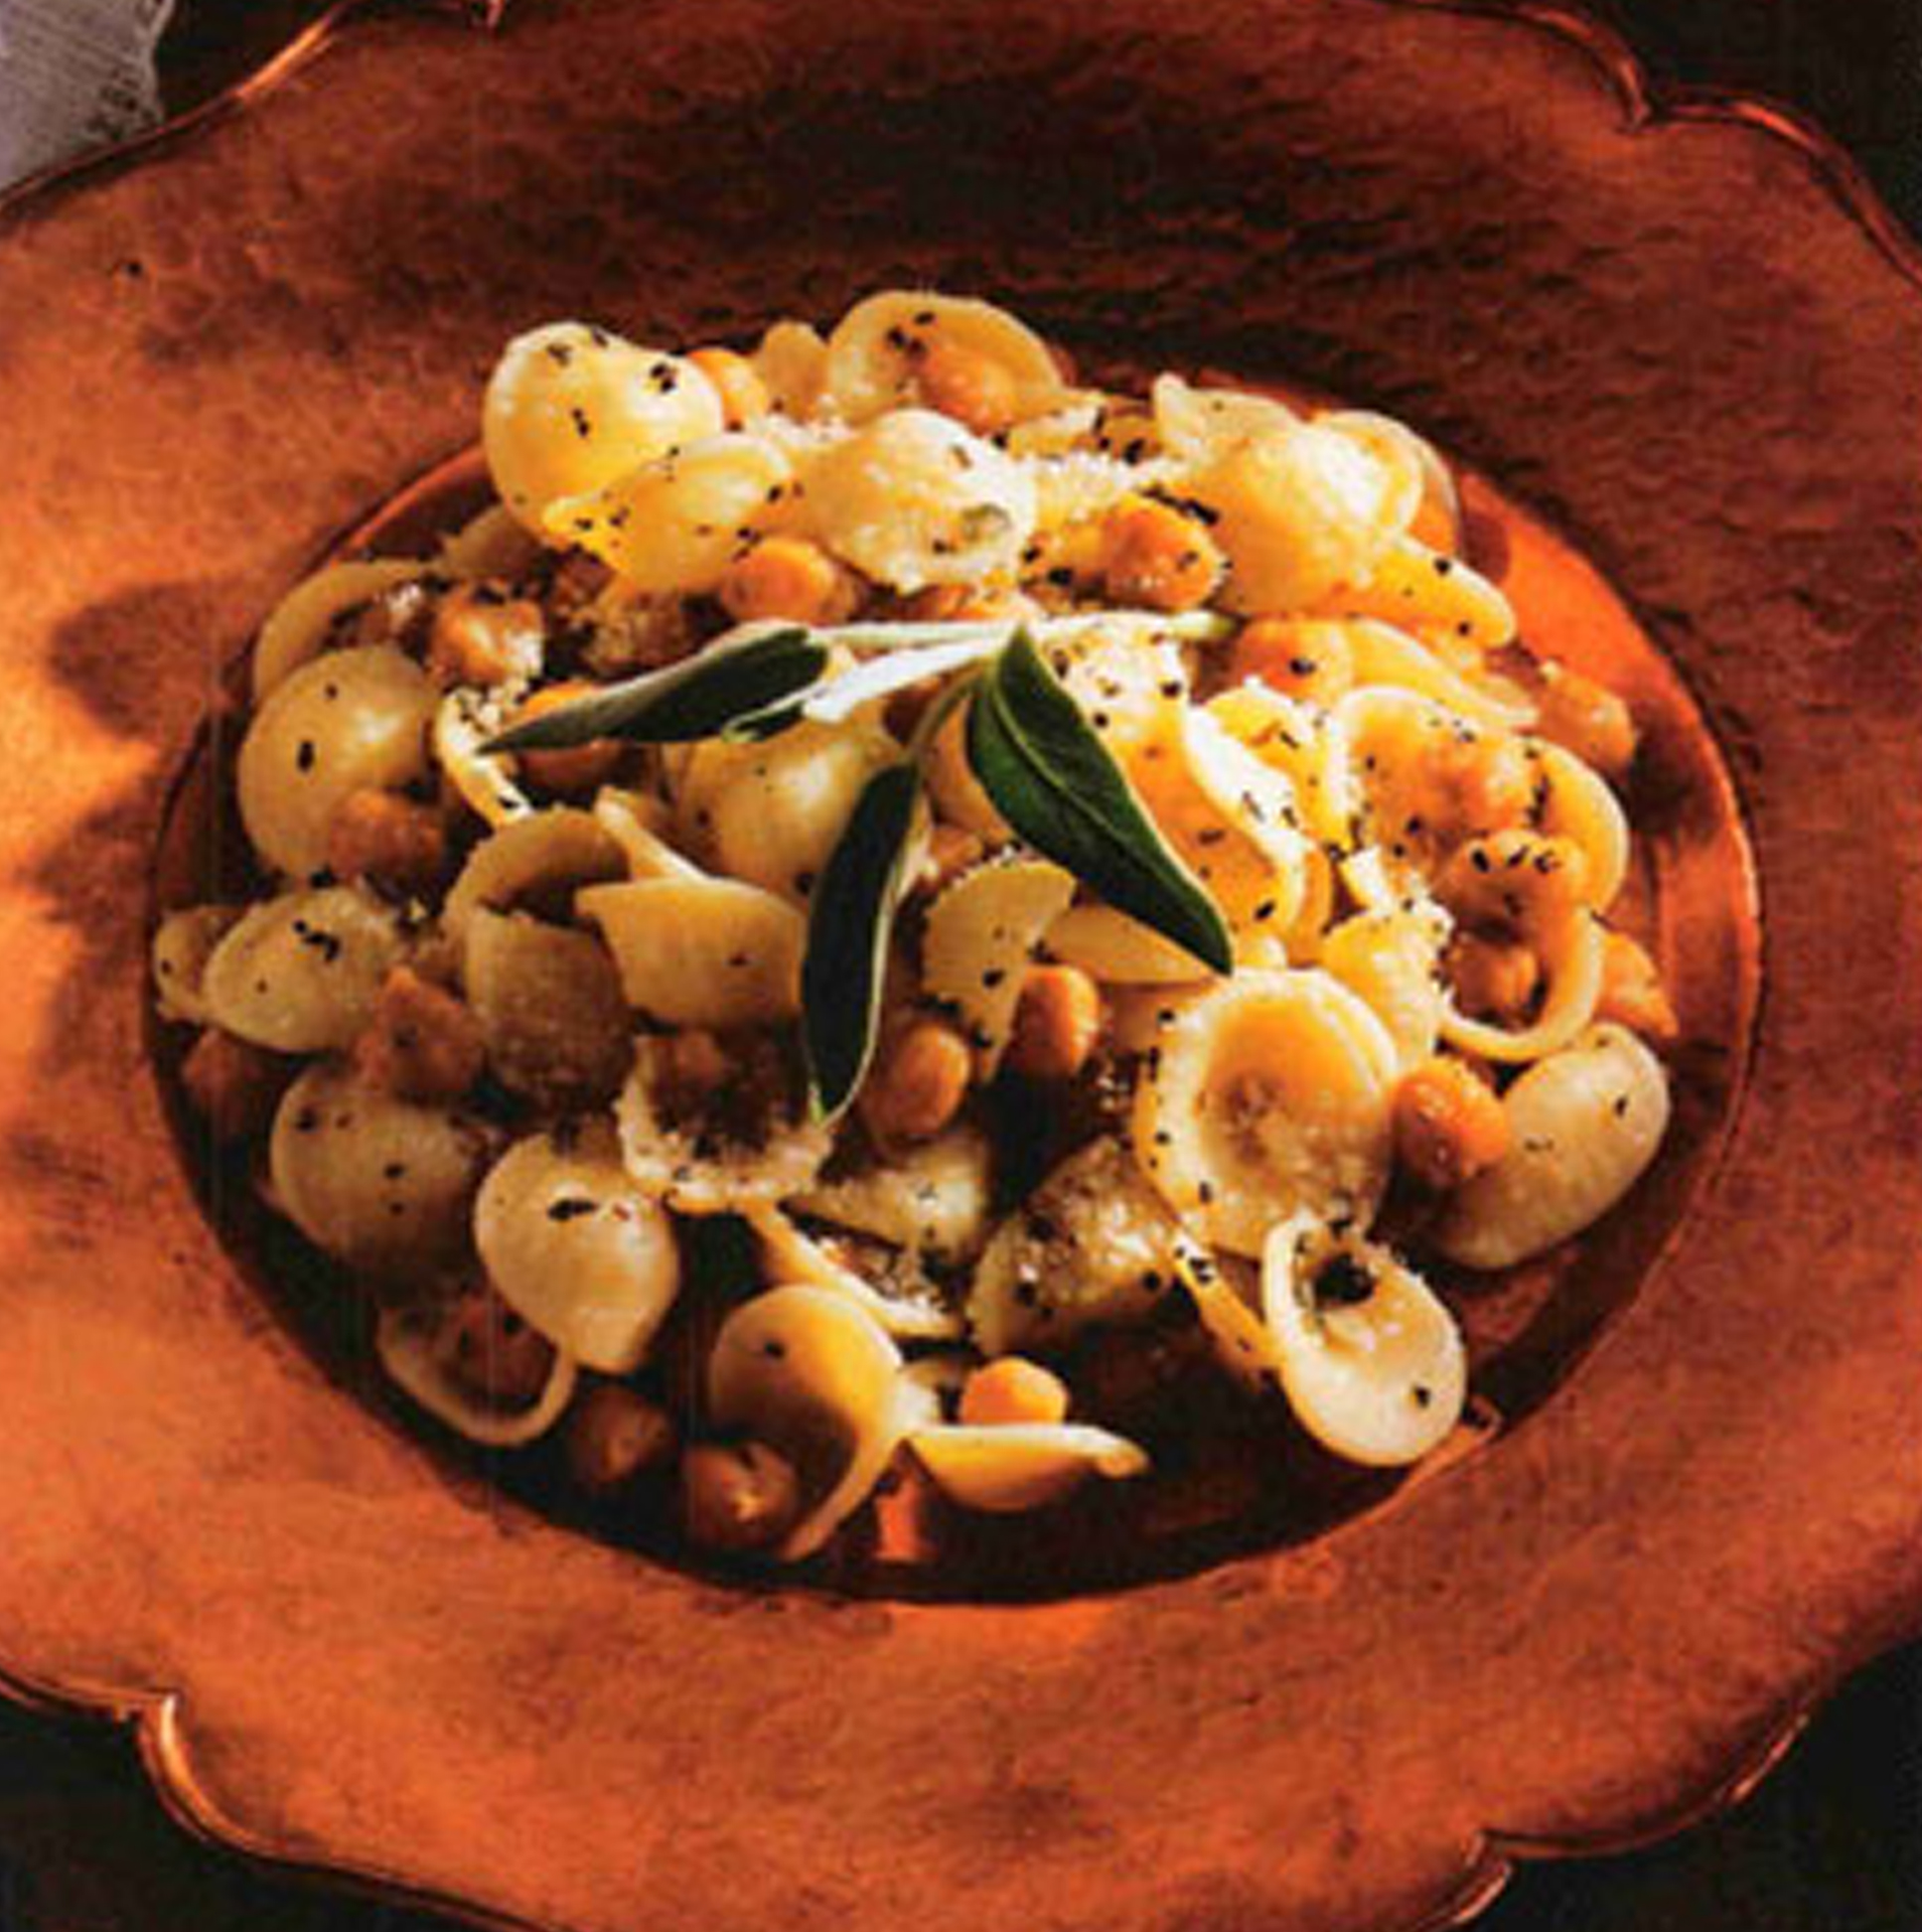 Orecchiette with Fried Chickpeas & Black Pepper